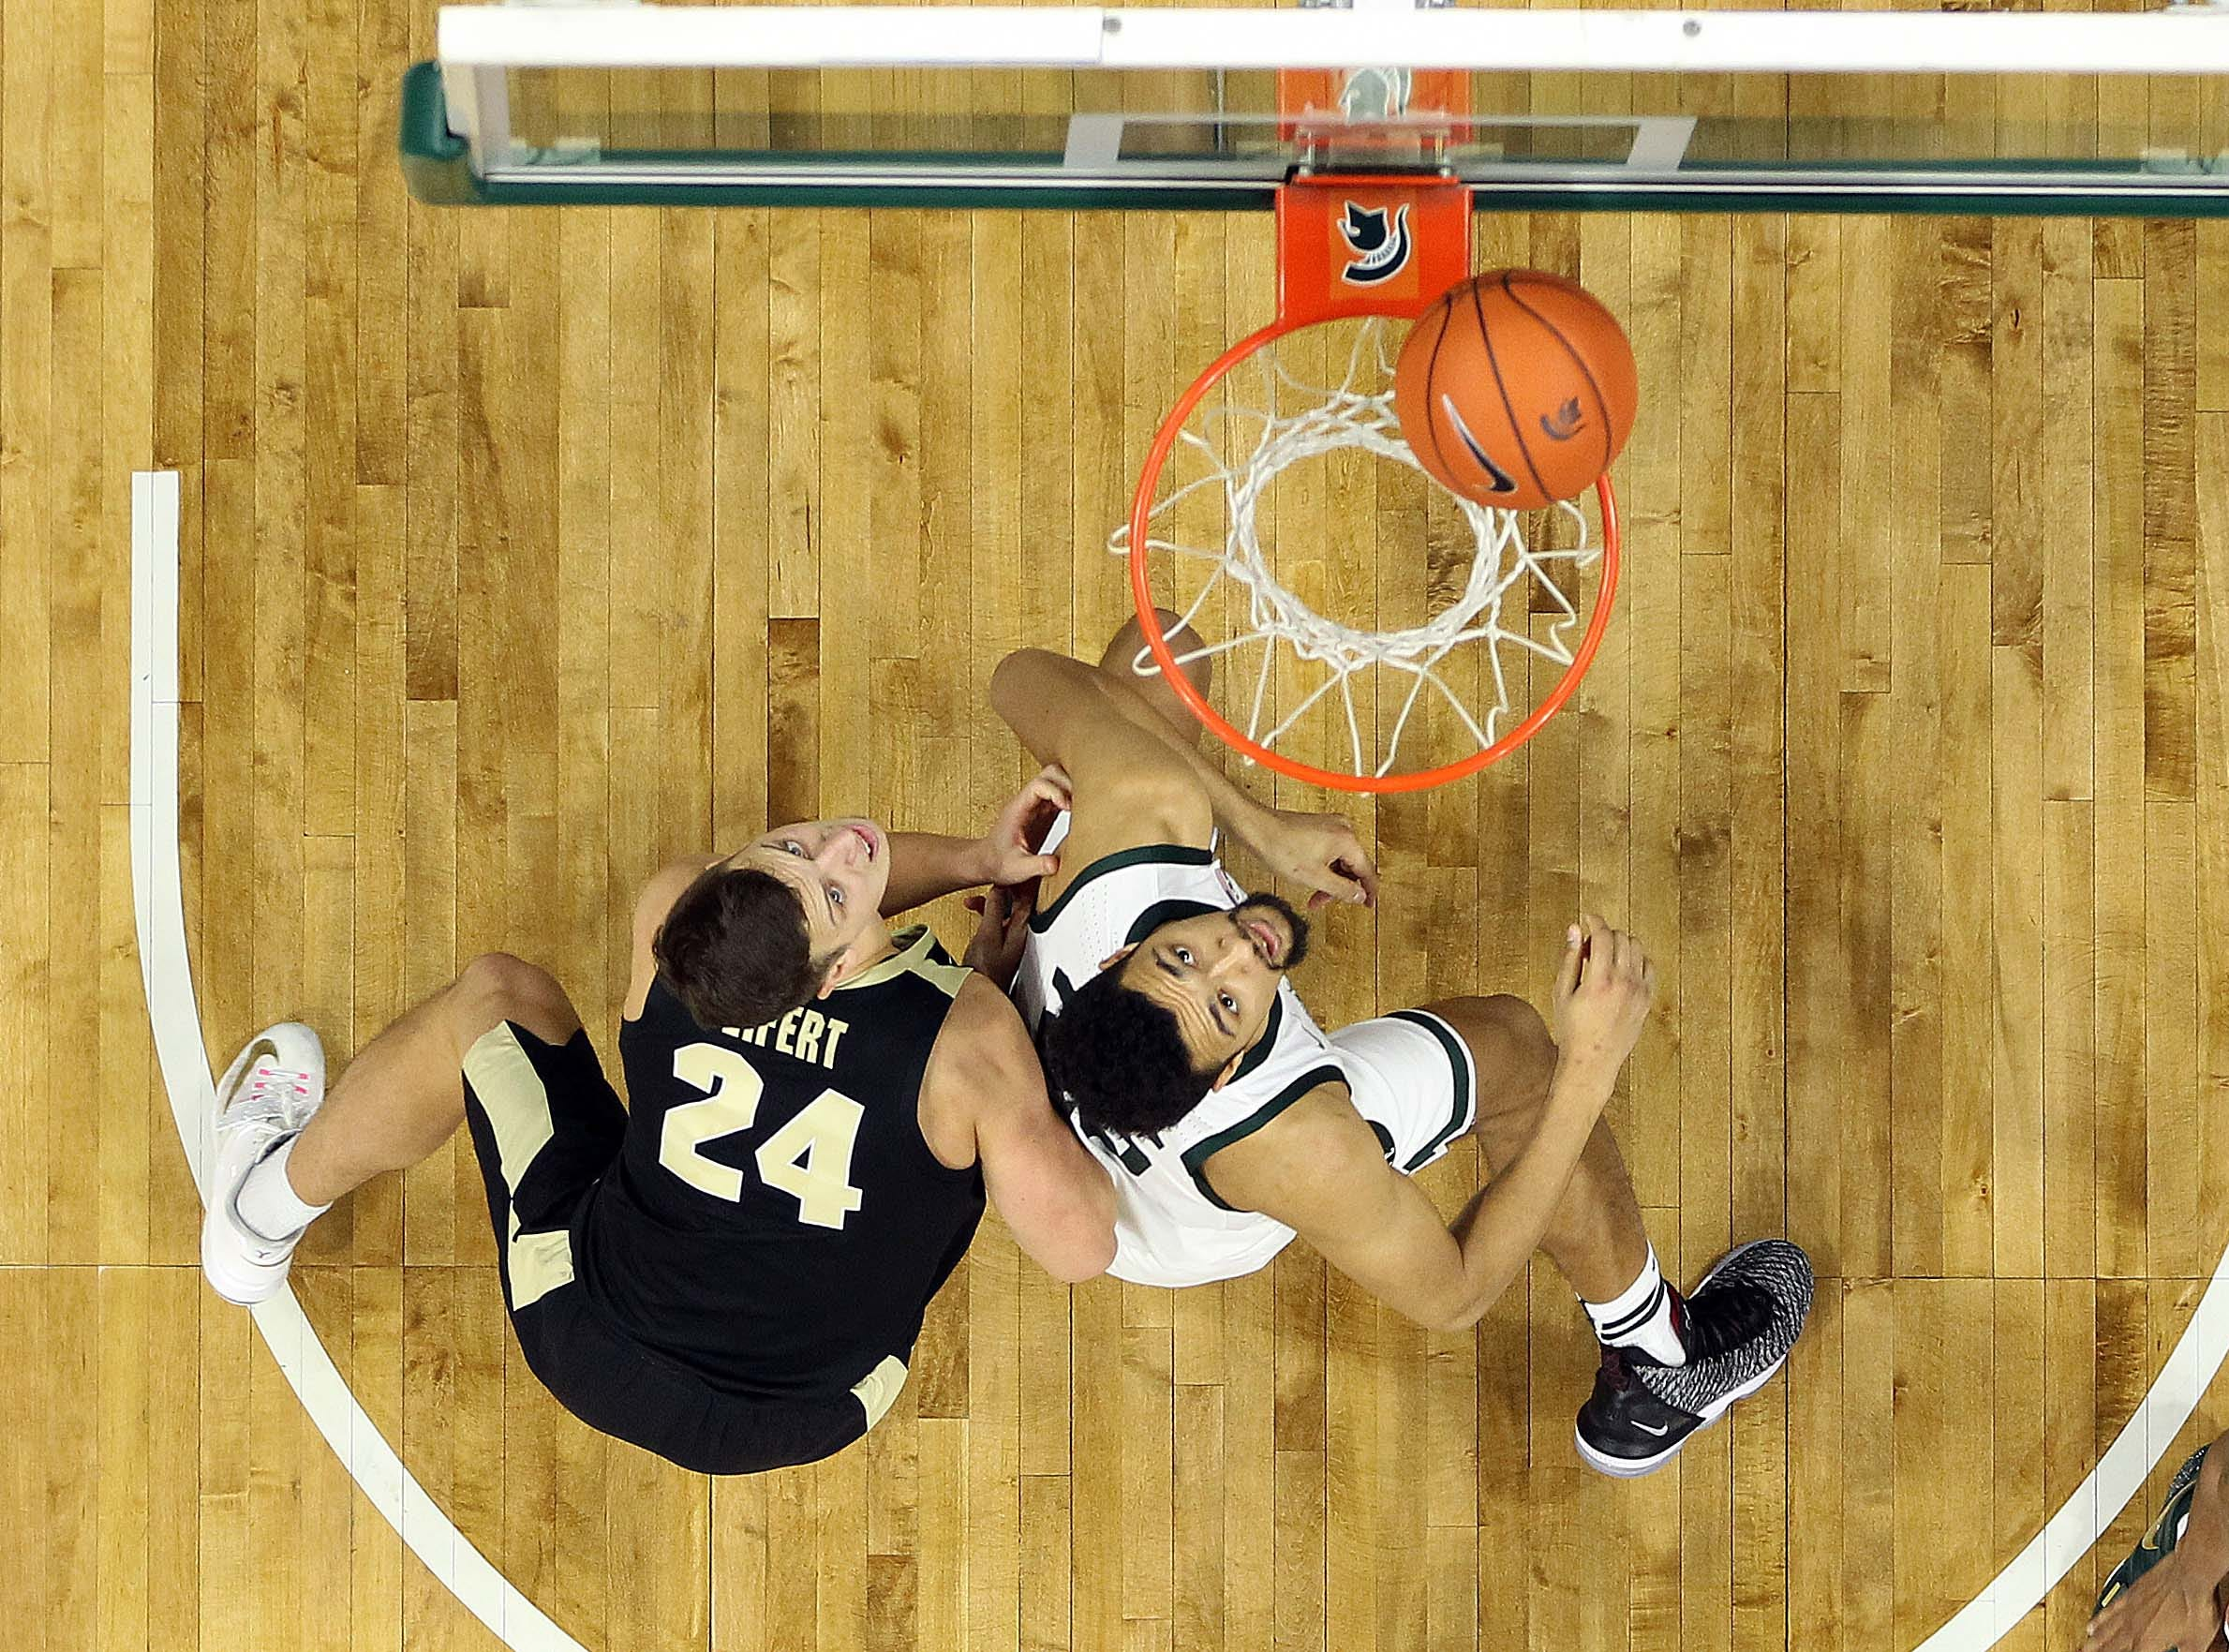 Jan 8, 2019; East Lansing, MI, USA; Michigan State Spartans forward Kenny Goins (25) and Purdue Boilermakers forward Grady Eifert (24) fight for position during the second half of a game at the Breslin Center. Mandatory Credit: Mike Carter-USA TODAY Sports